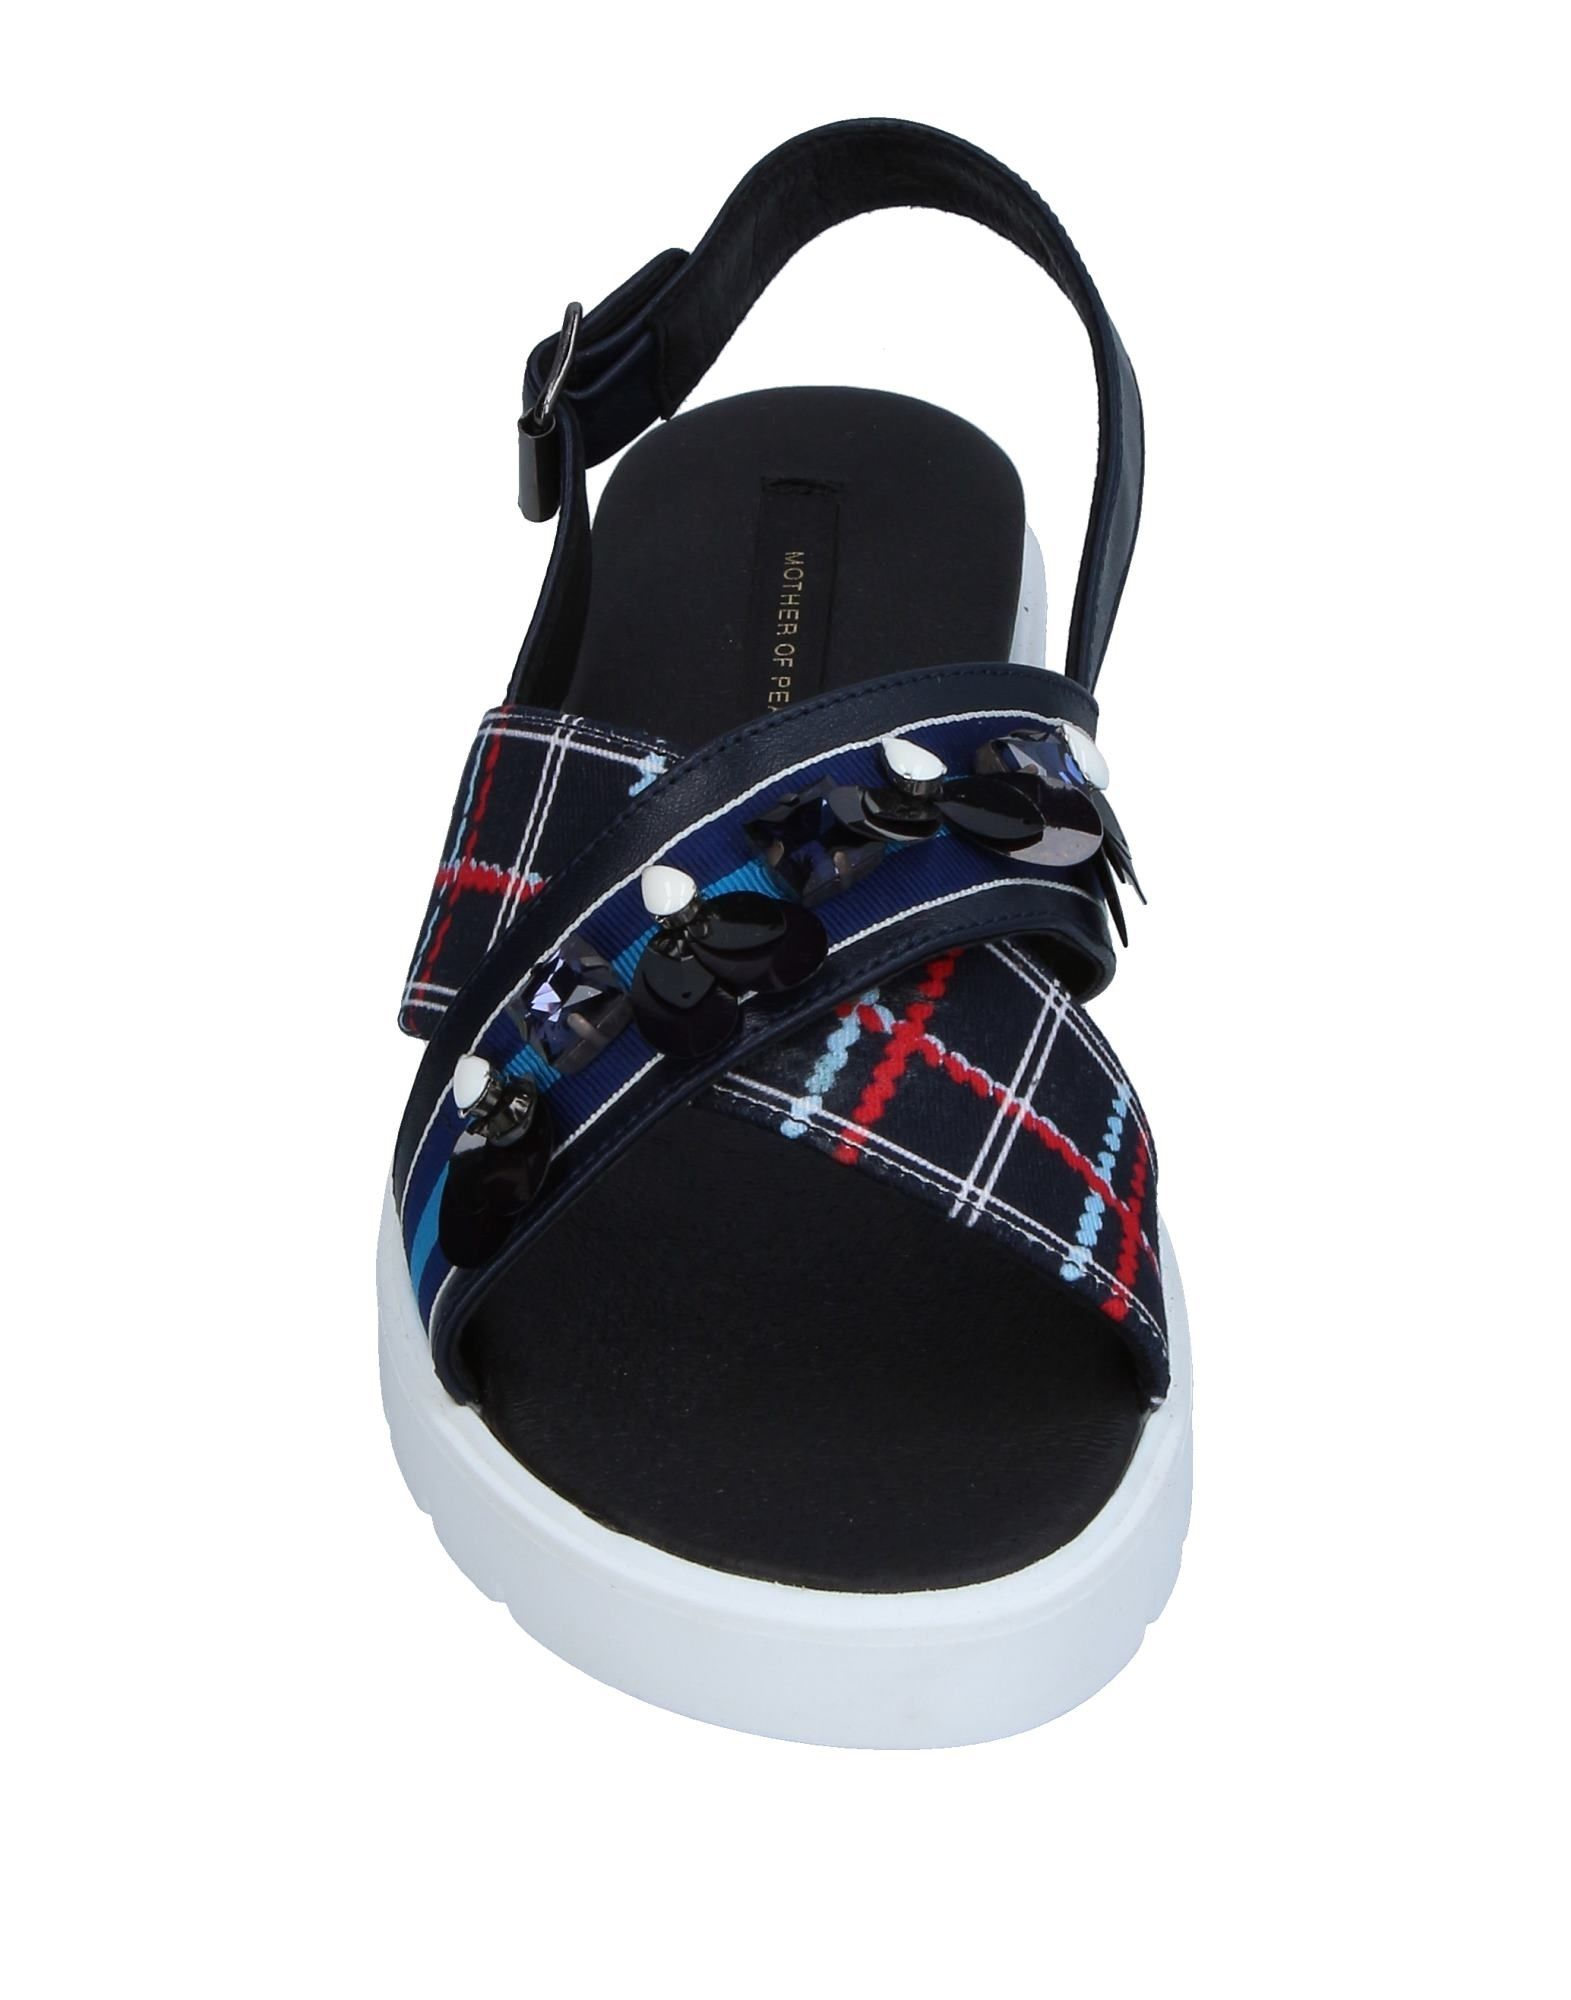 CHAUSSURES - SandalesMother Of Pearl kH2MYrT